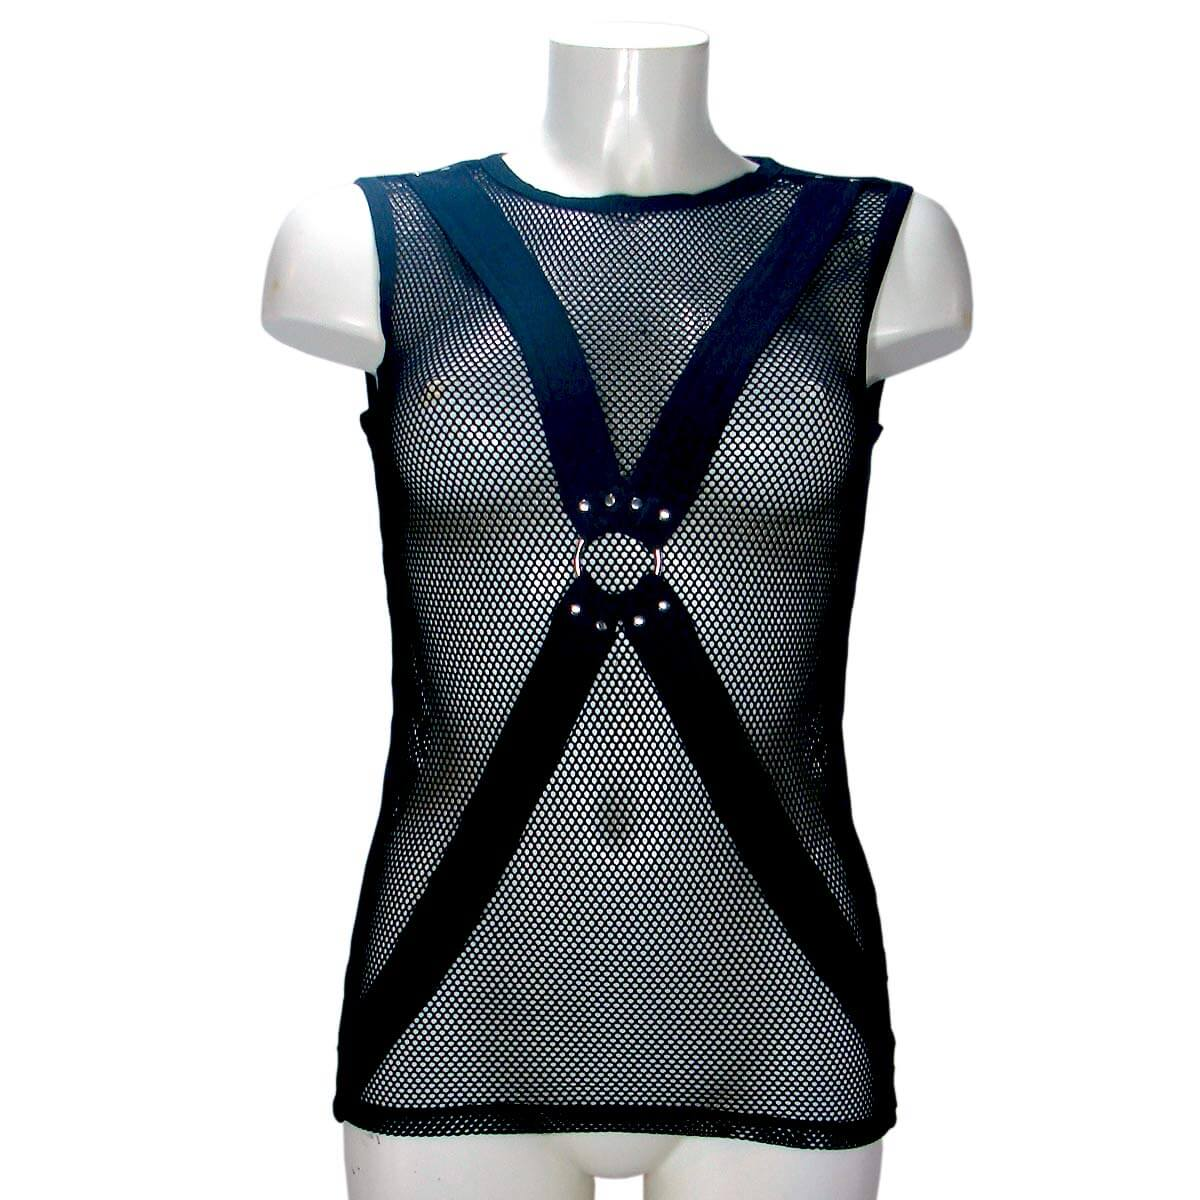 Unisex fishnet shirt with X and O-ring By Lip ServiceAnother Way of Life